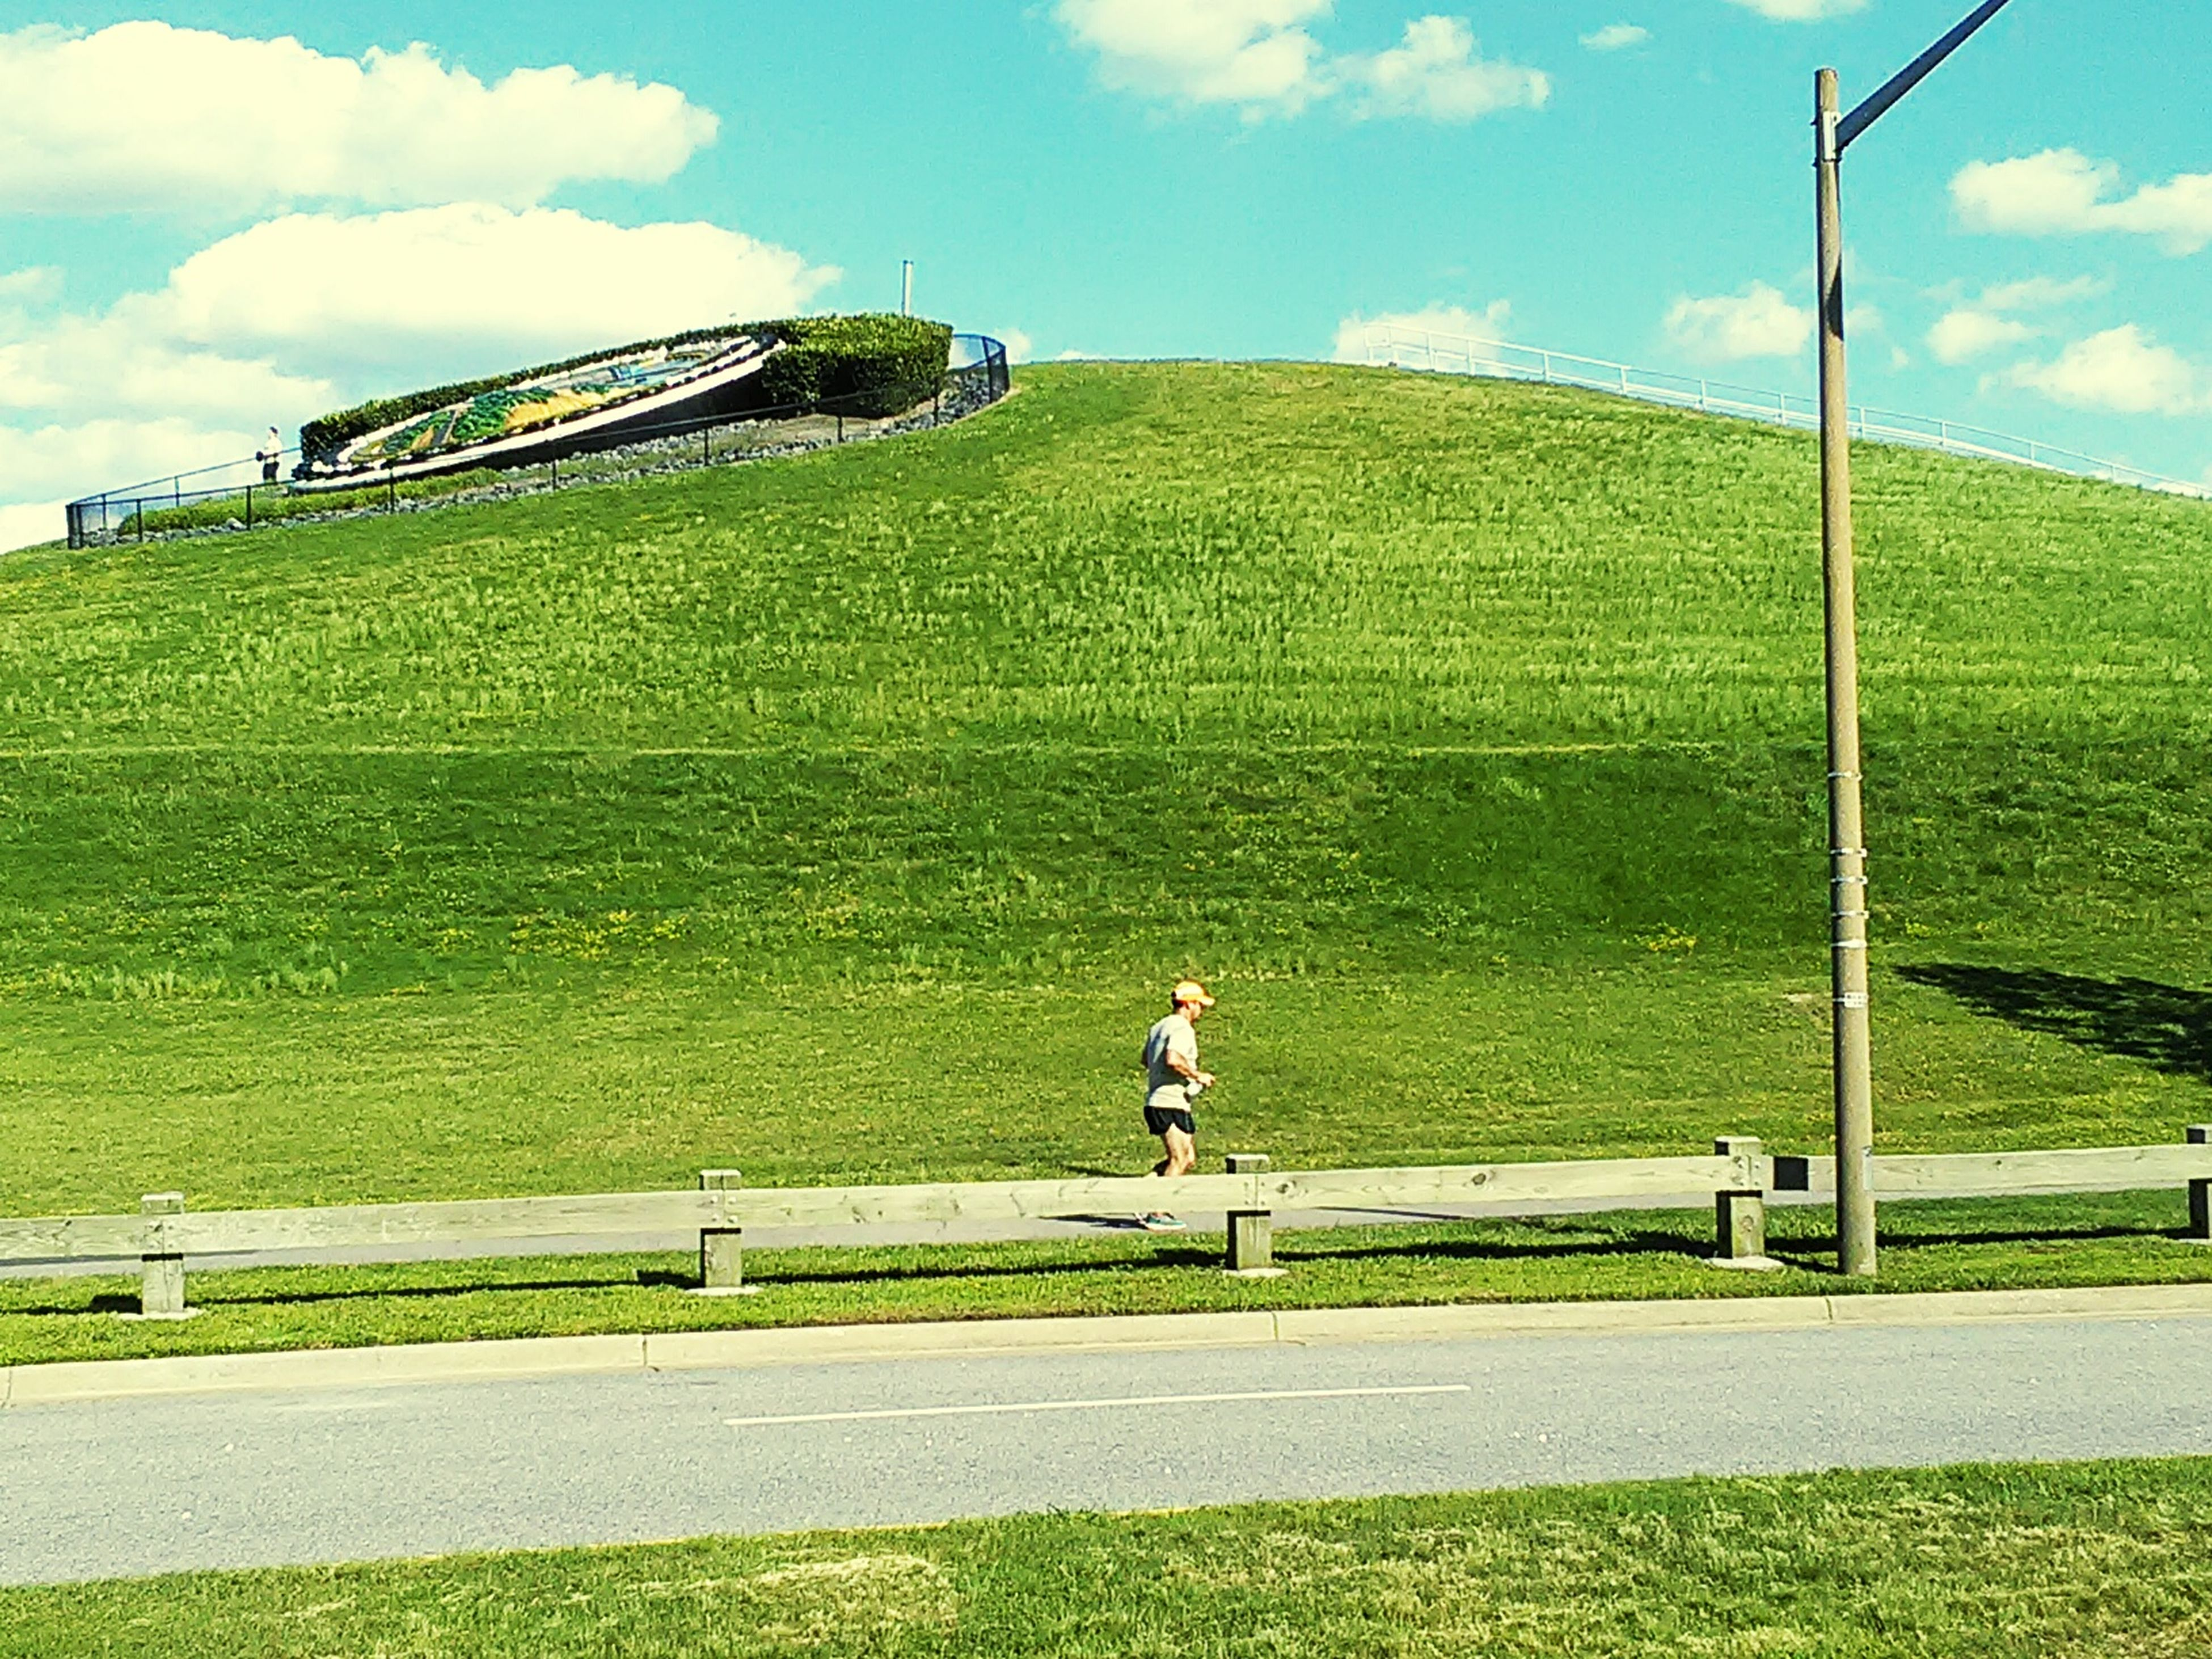 grass, sky, full length, green color, lifestyles, leisure activity, men, cloud - sky, field, sport, grassy, road, rear view, cloud, day, transportation, outdoors, standing